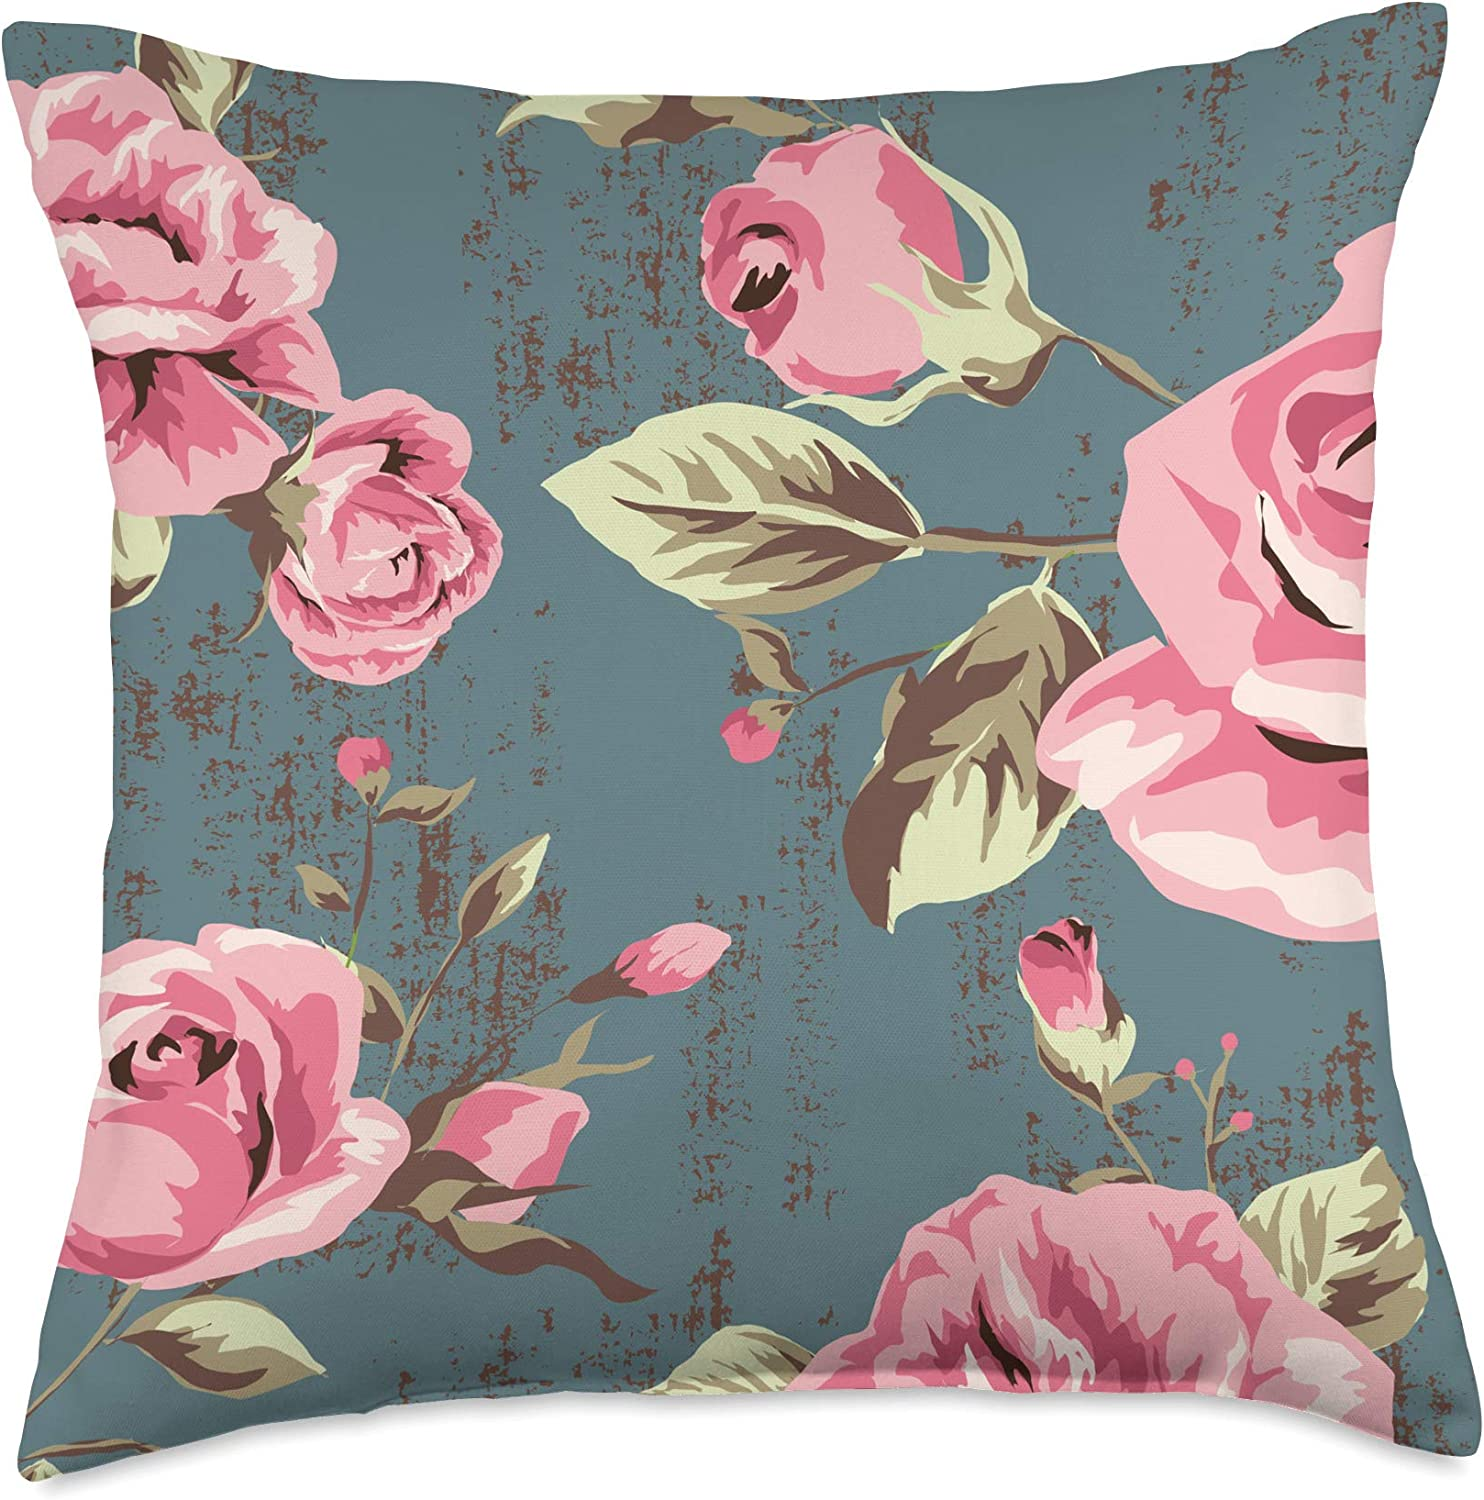 Vintage English Garden Roses Blue Background Pink Roses Throw Pillow, 18x18, Multicolor